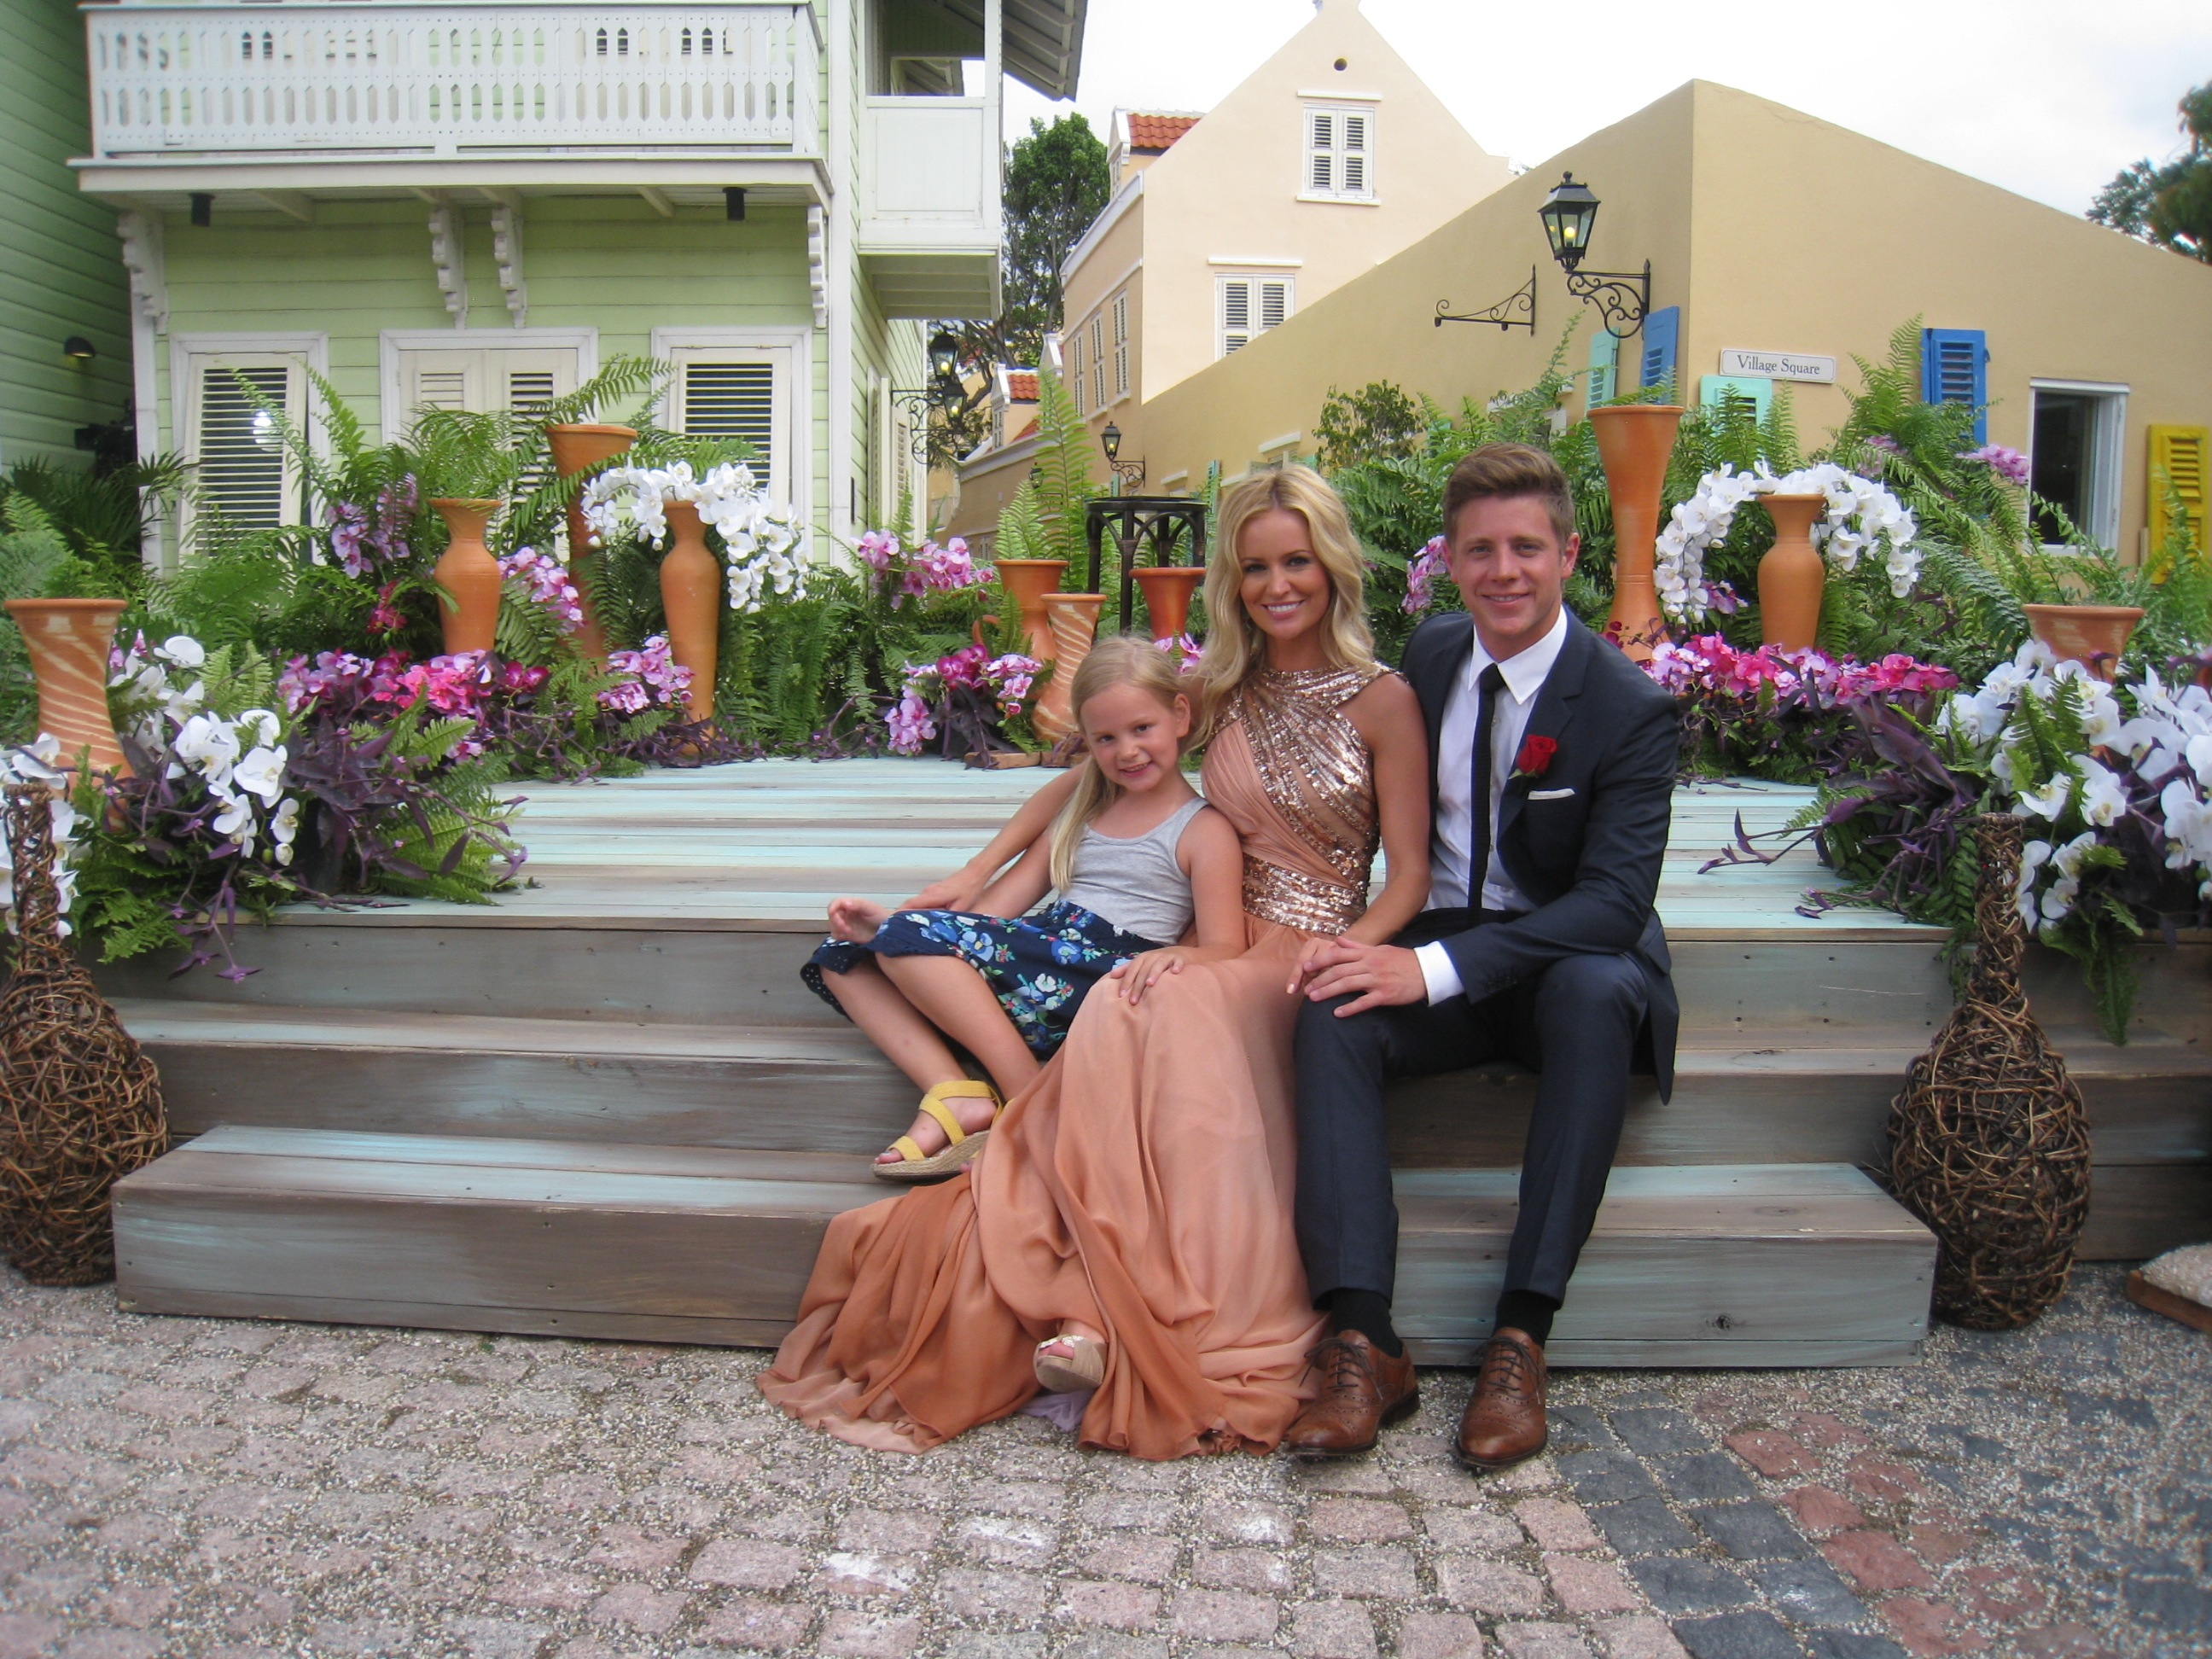 Emily and Jef  PHOTOS from the Bachelorette Season 8 finaleEmily Maynard And Jef Holm Proposal